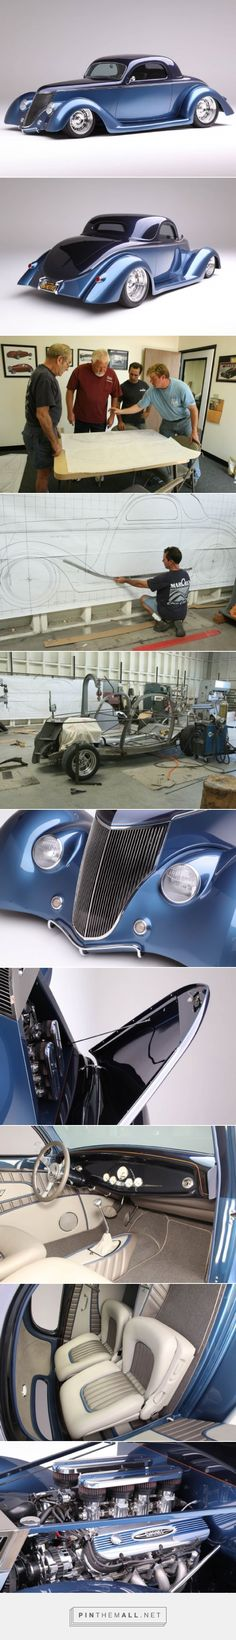 engine diagram engines transmissions 3 d lay out 1936 ford coupe is chip foose designed and handformed in metal by marcel del lay the engine in this ride is as impressive as the rest of the car an